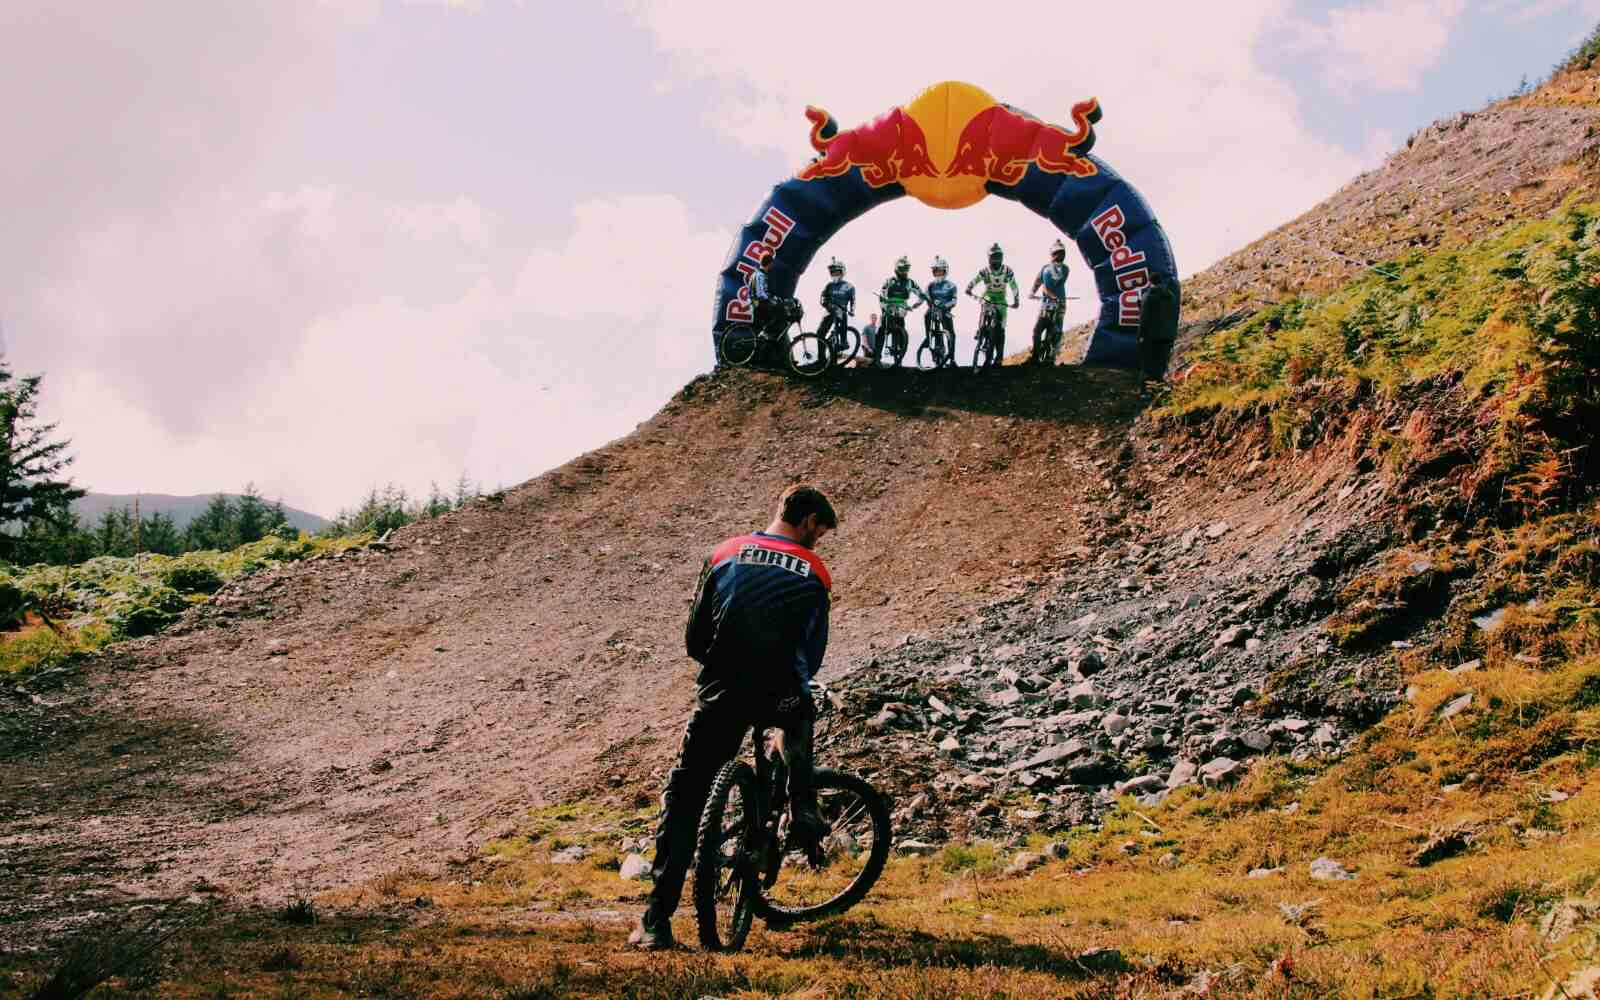 Red Bull Hardline Downhill MTB start line mountain bikers lined up